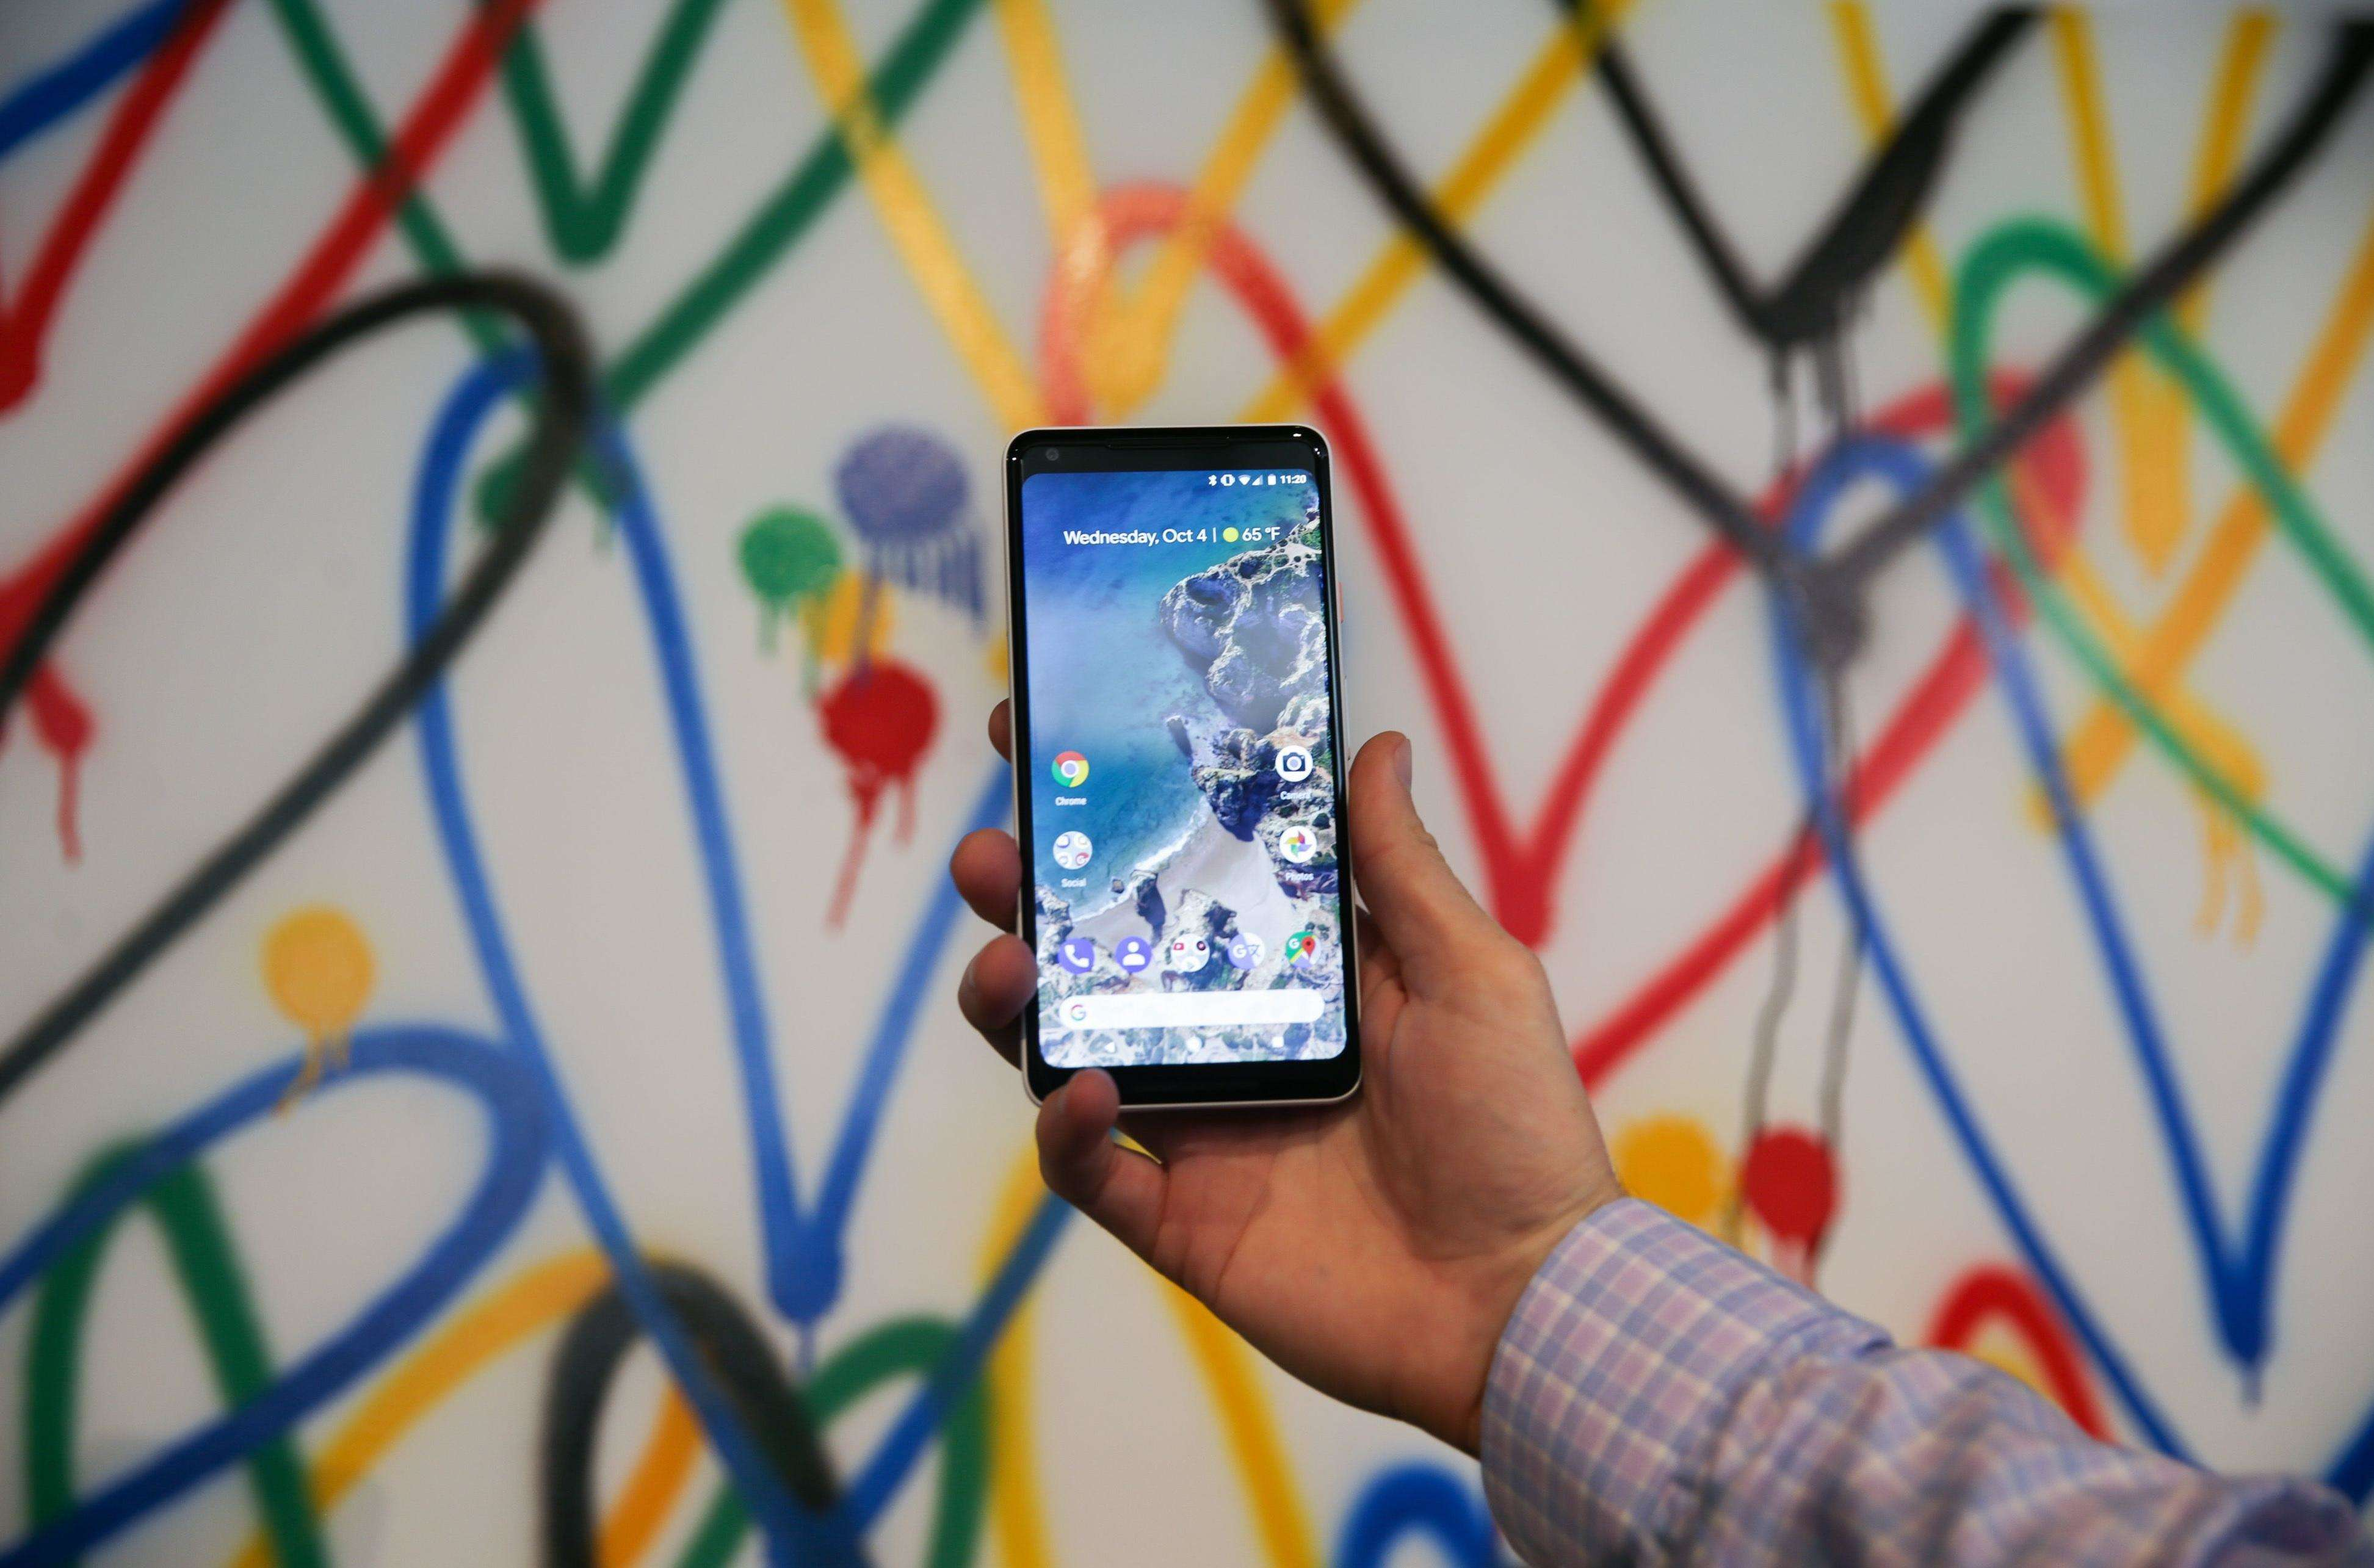 Google promises fix for random reboot in Pixel phones